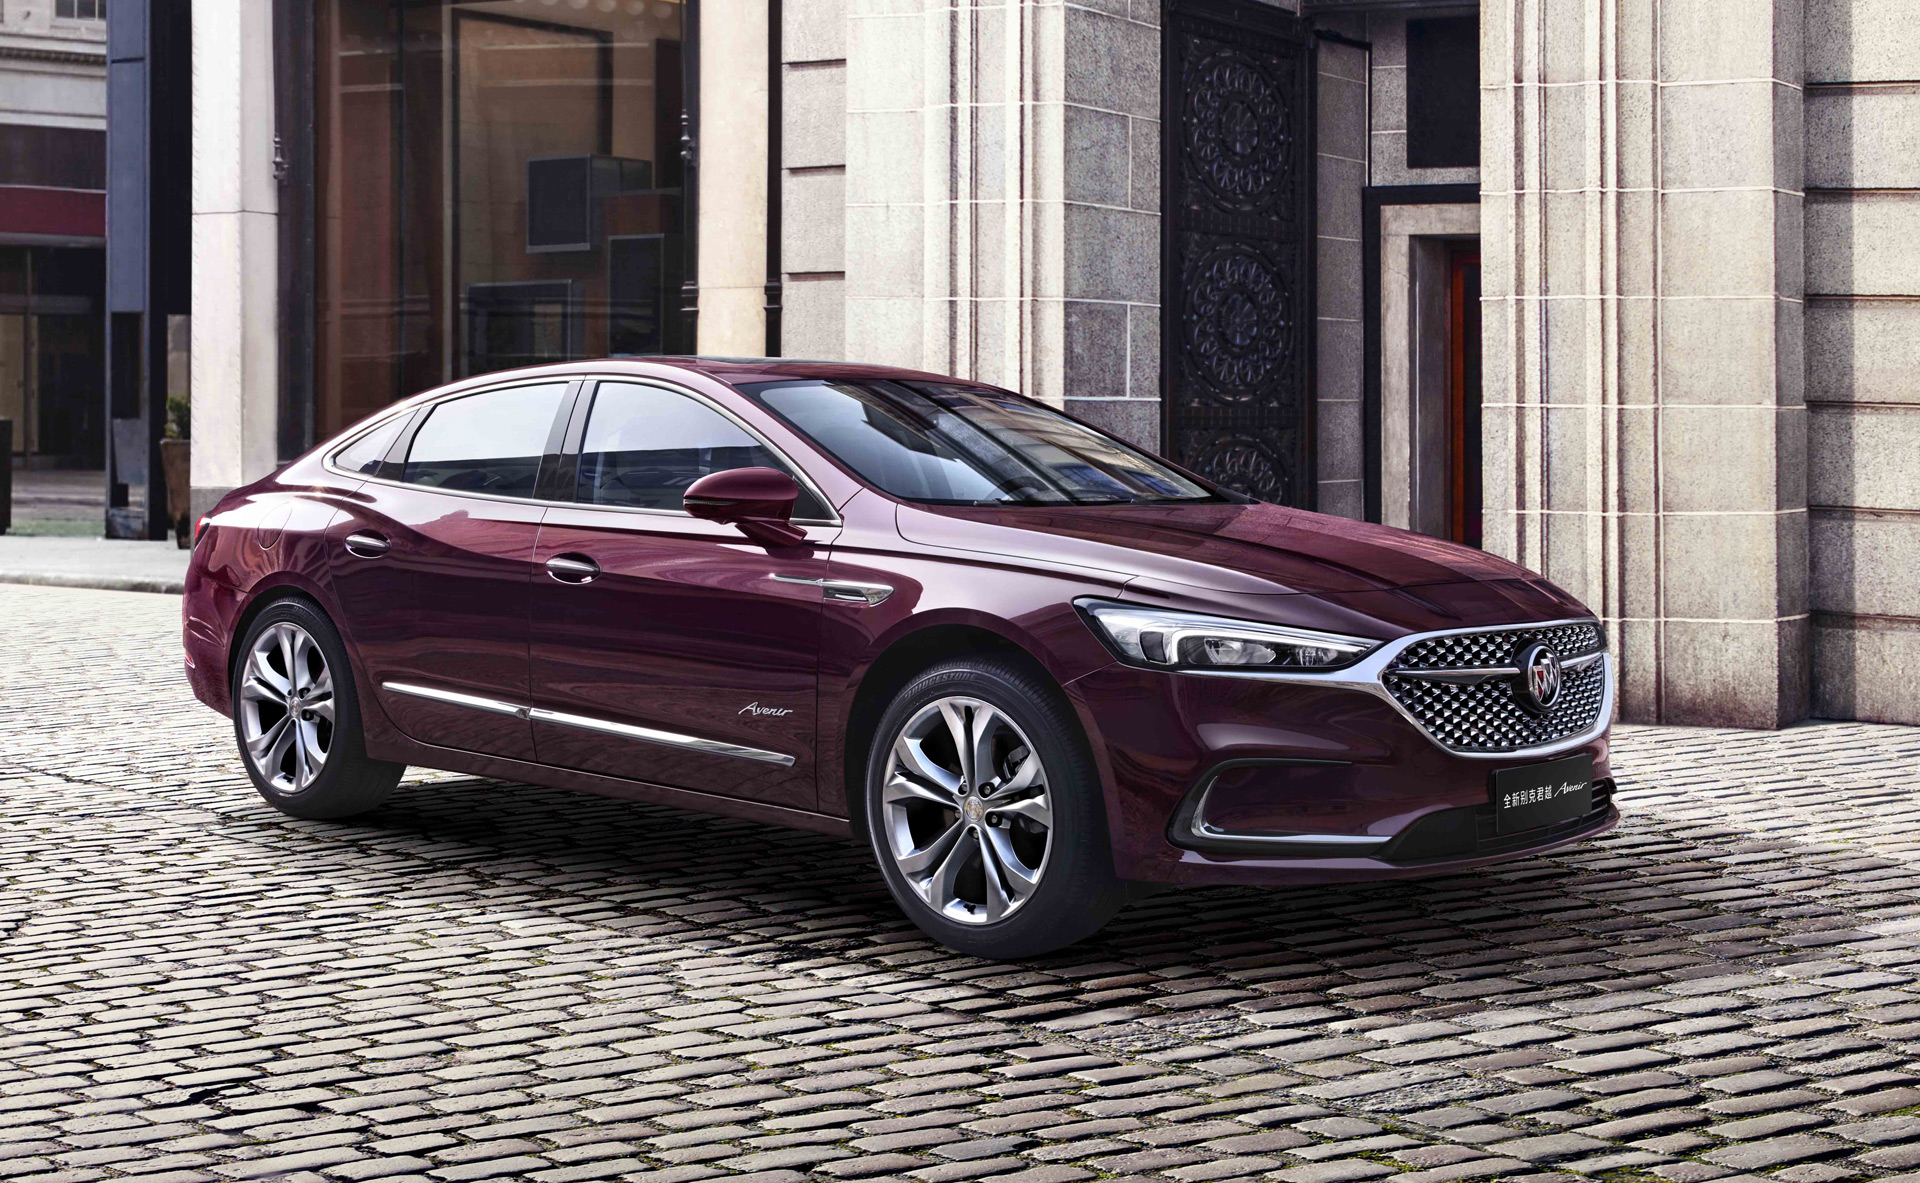 2020 Buick Lacrosse Made Handsome Just As It's Dropped In Us What Will The New 2021 Buick Lacrosse Look Like